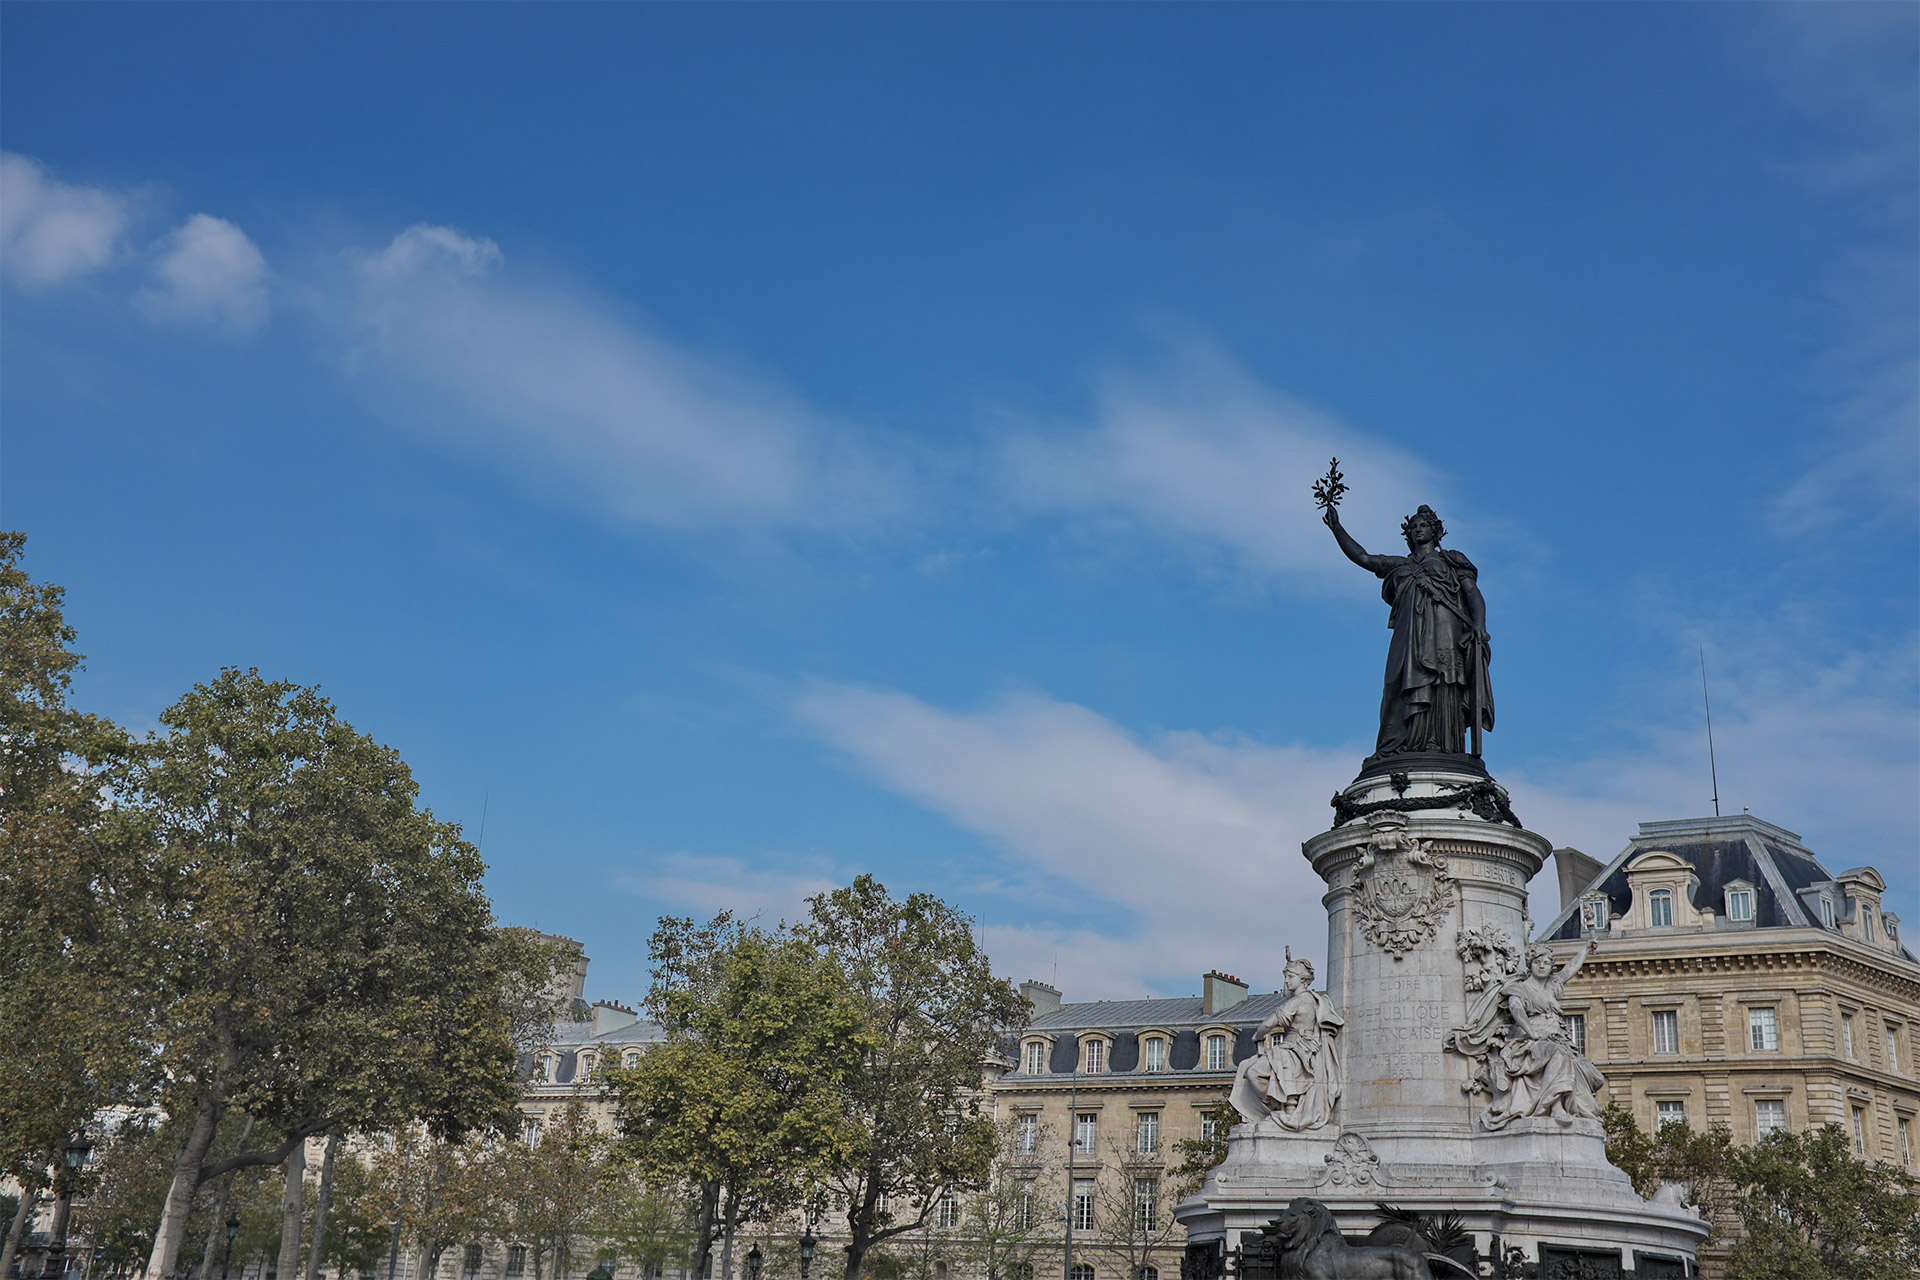 Place de la République in Paris